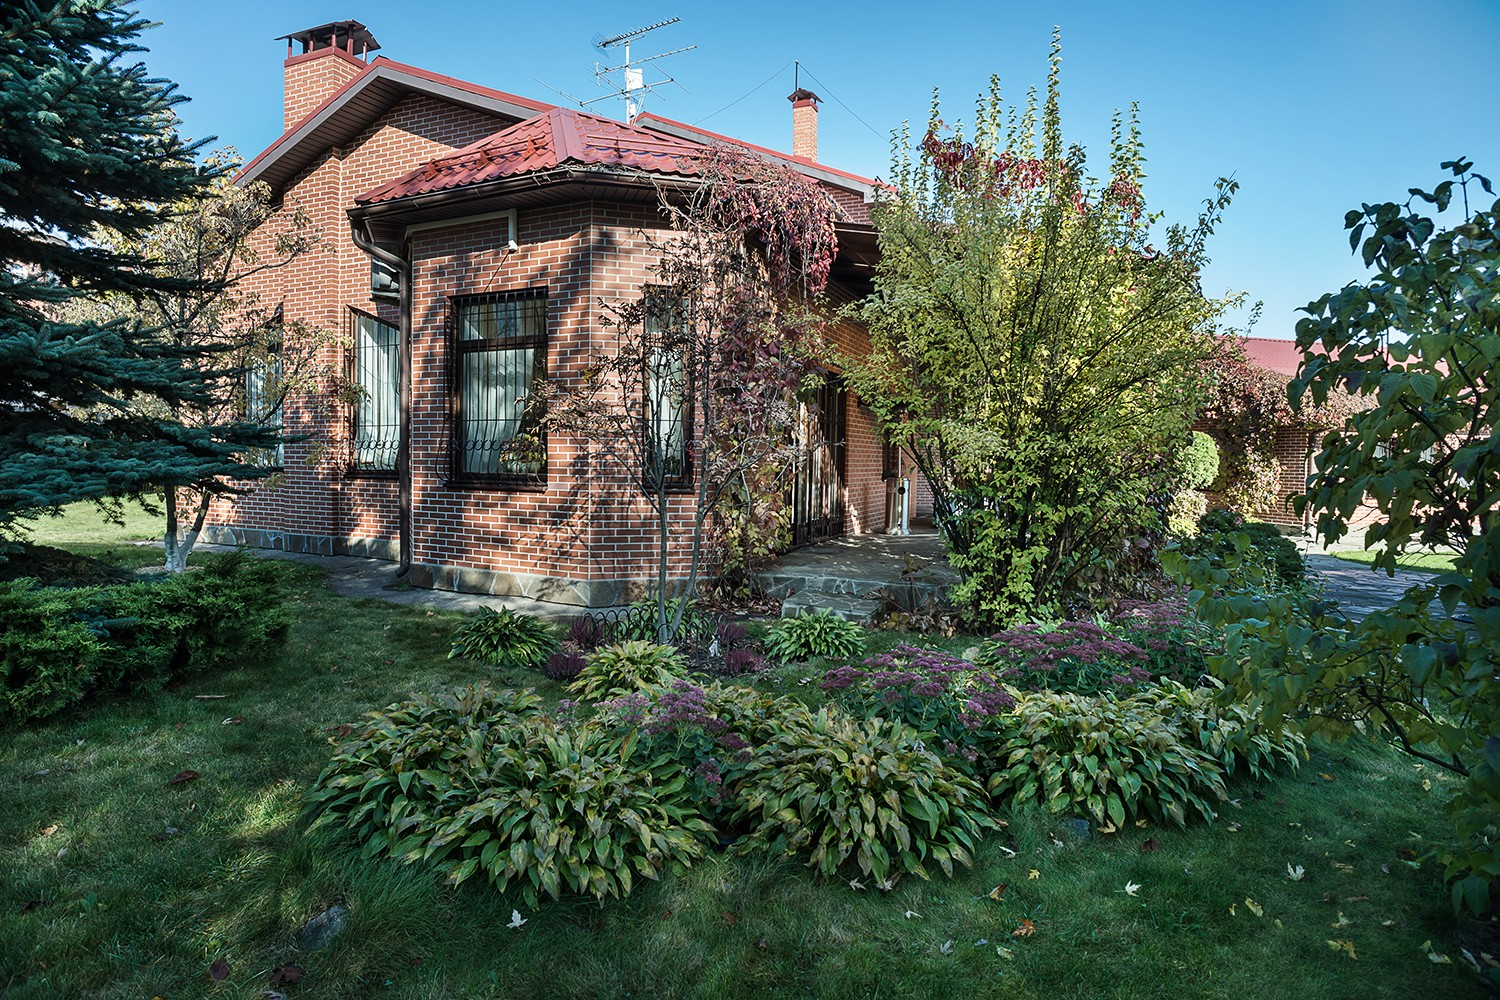 The appearance of the house near Moscow. Photos of real estate for sale